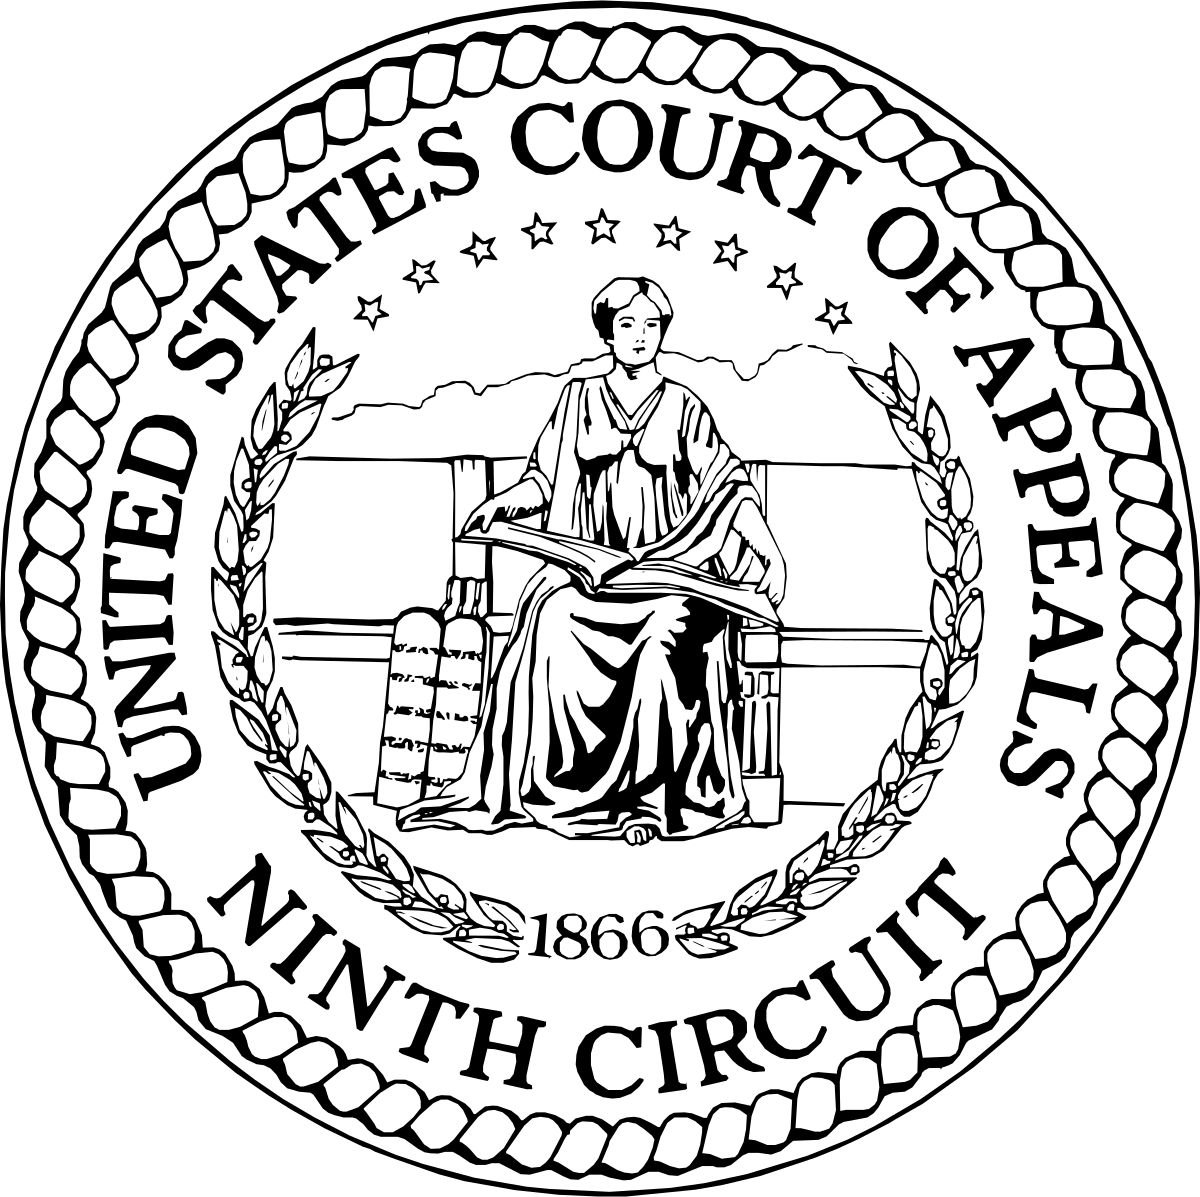 Ninth Circuit Court of Appeals